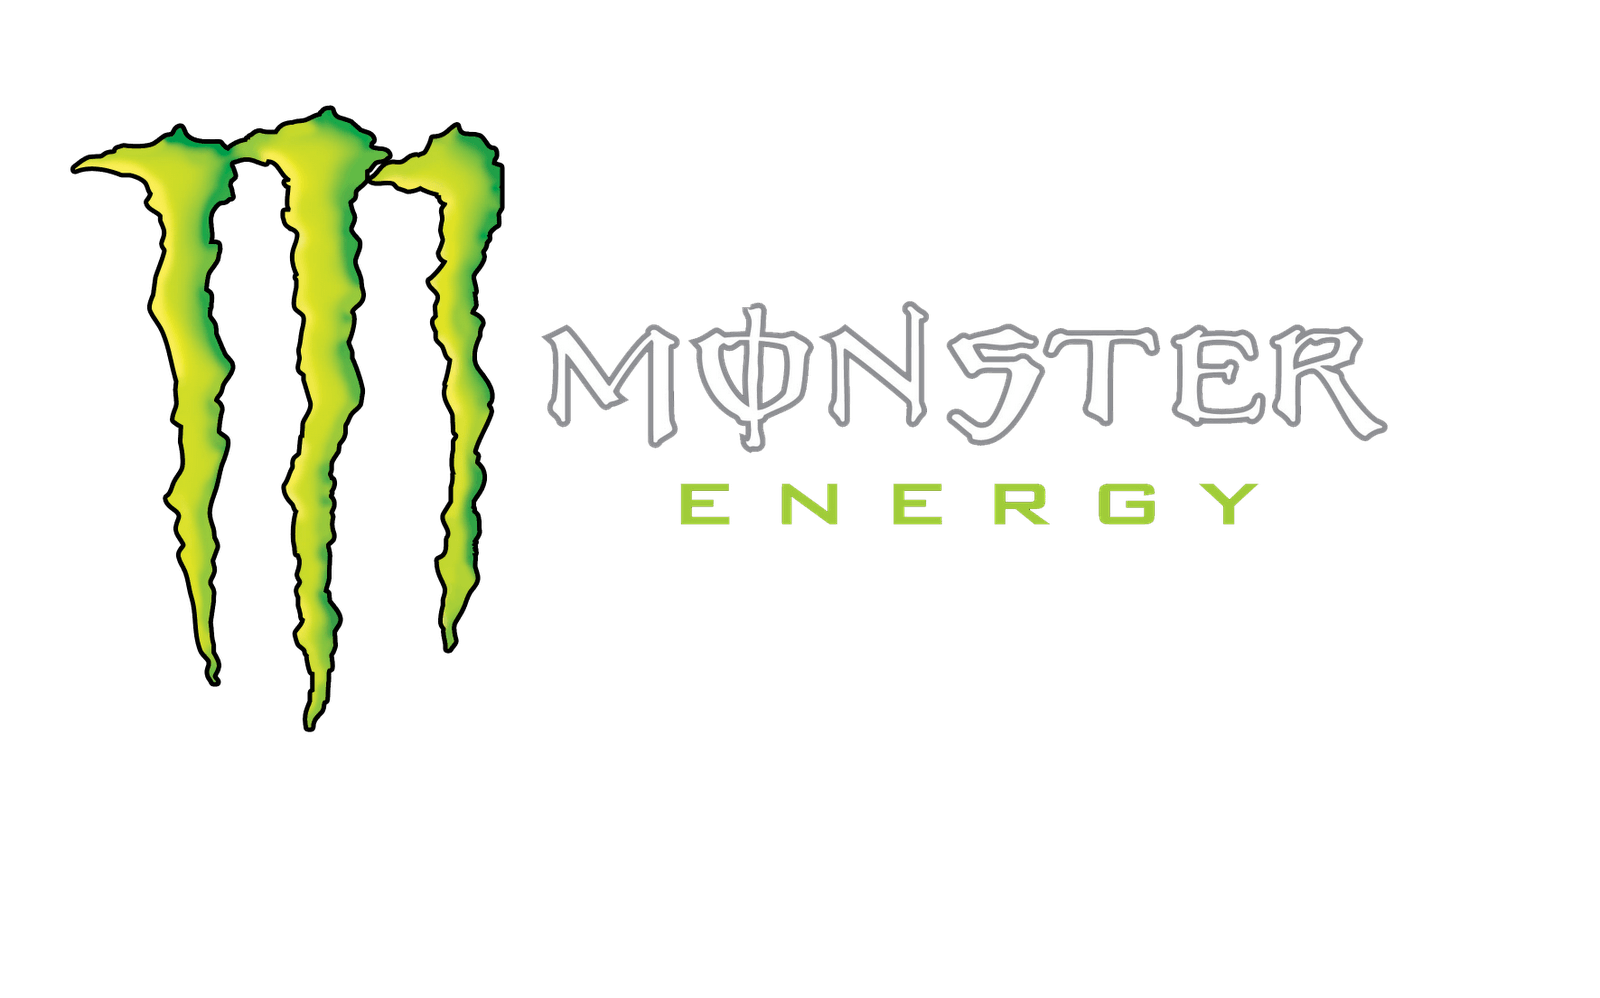 Monster Logo Energy Image Wallpapers With 1600x998 Resolution